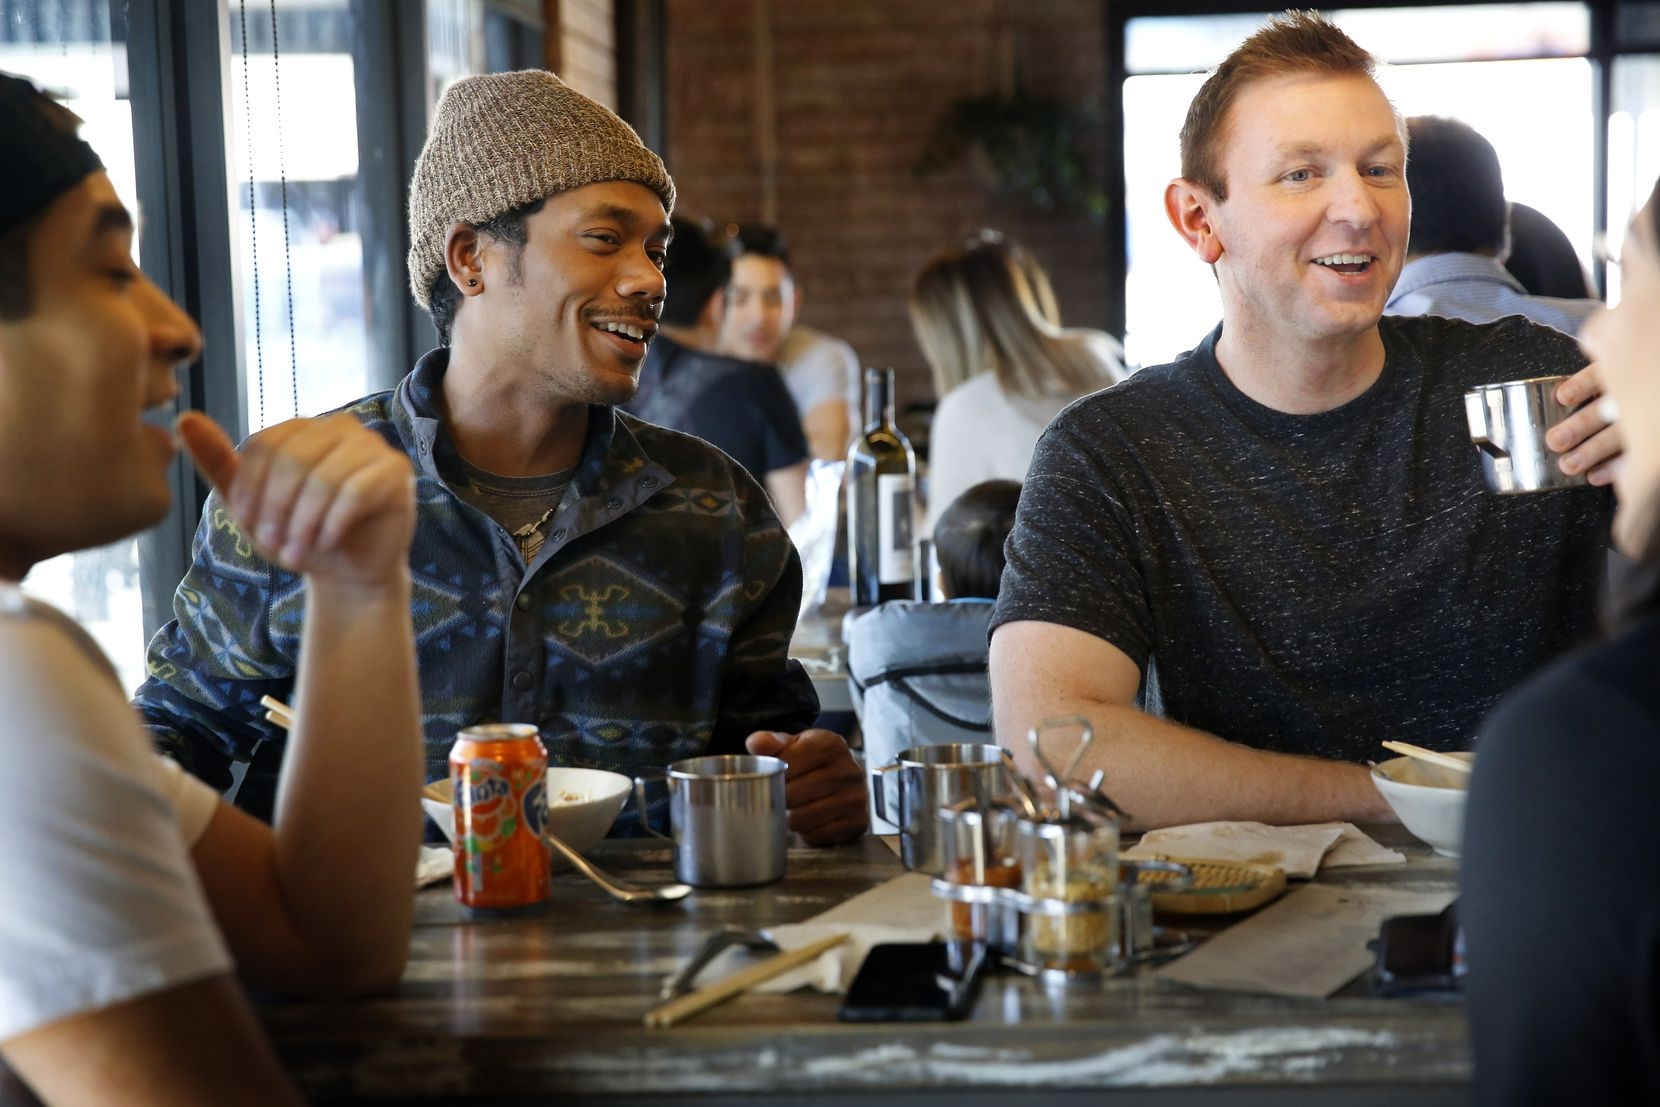 Diners share laughs over lunch at the Khao Noodle Shop, a tiny spot in East Dallas where chef Donny Sirisavath is making exciting dishes based on the Lao food of his childhood, Saturday, March 9, 2019. (Tom Fox/The Dallas Morning News)